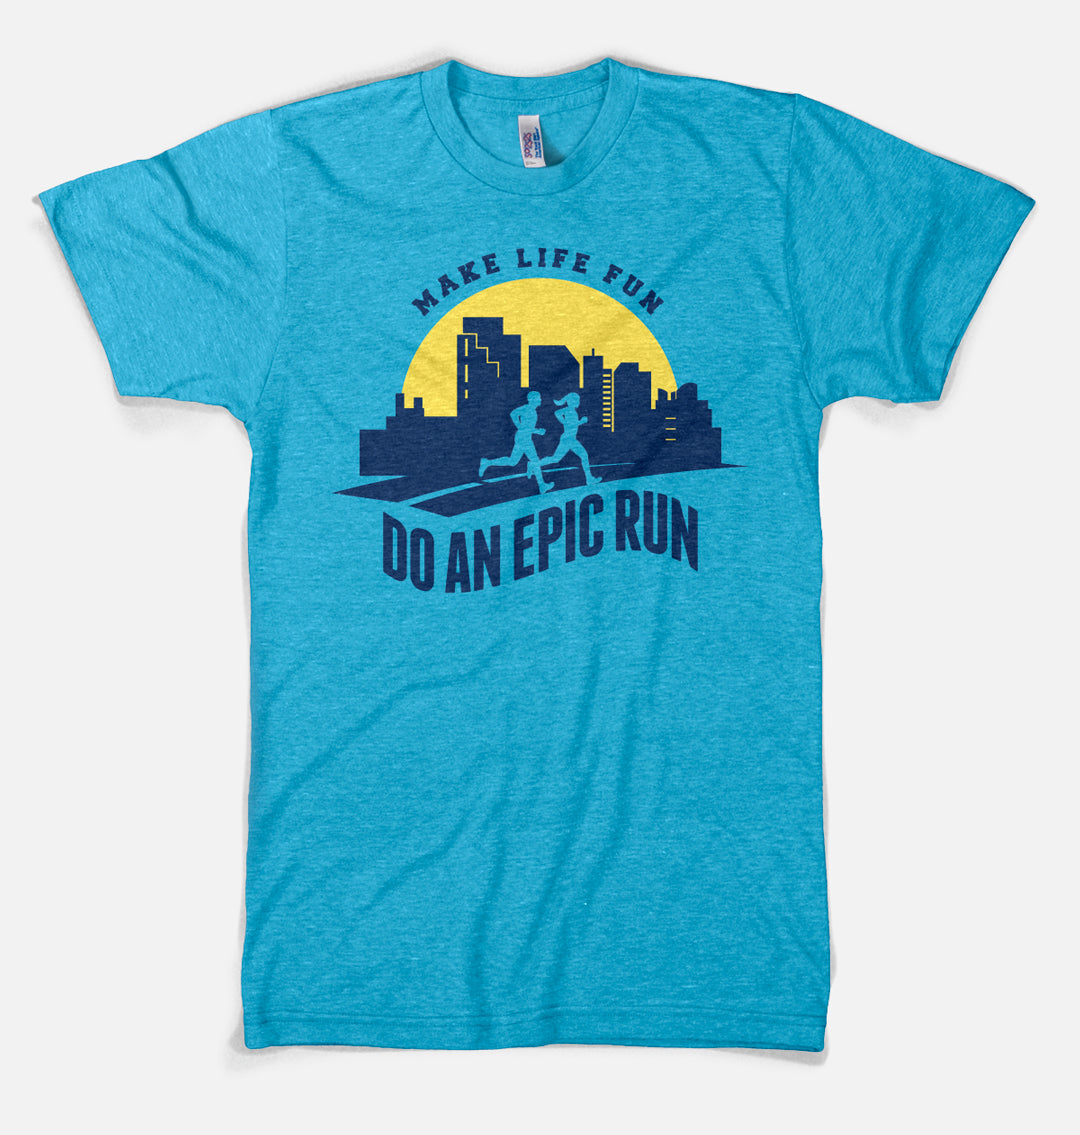 Make Life Fun - Do an Epic Run - Premium Designer T-shirt